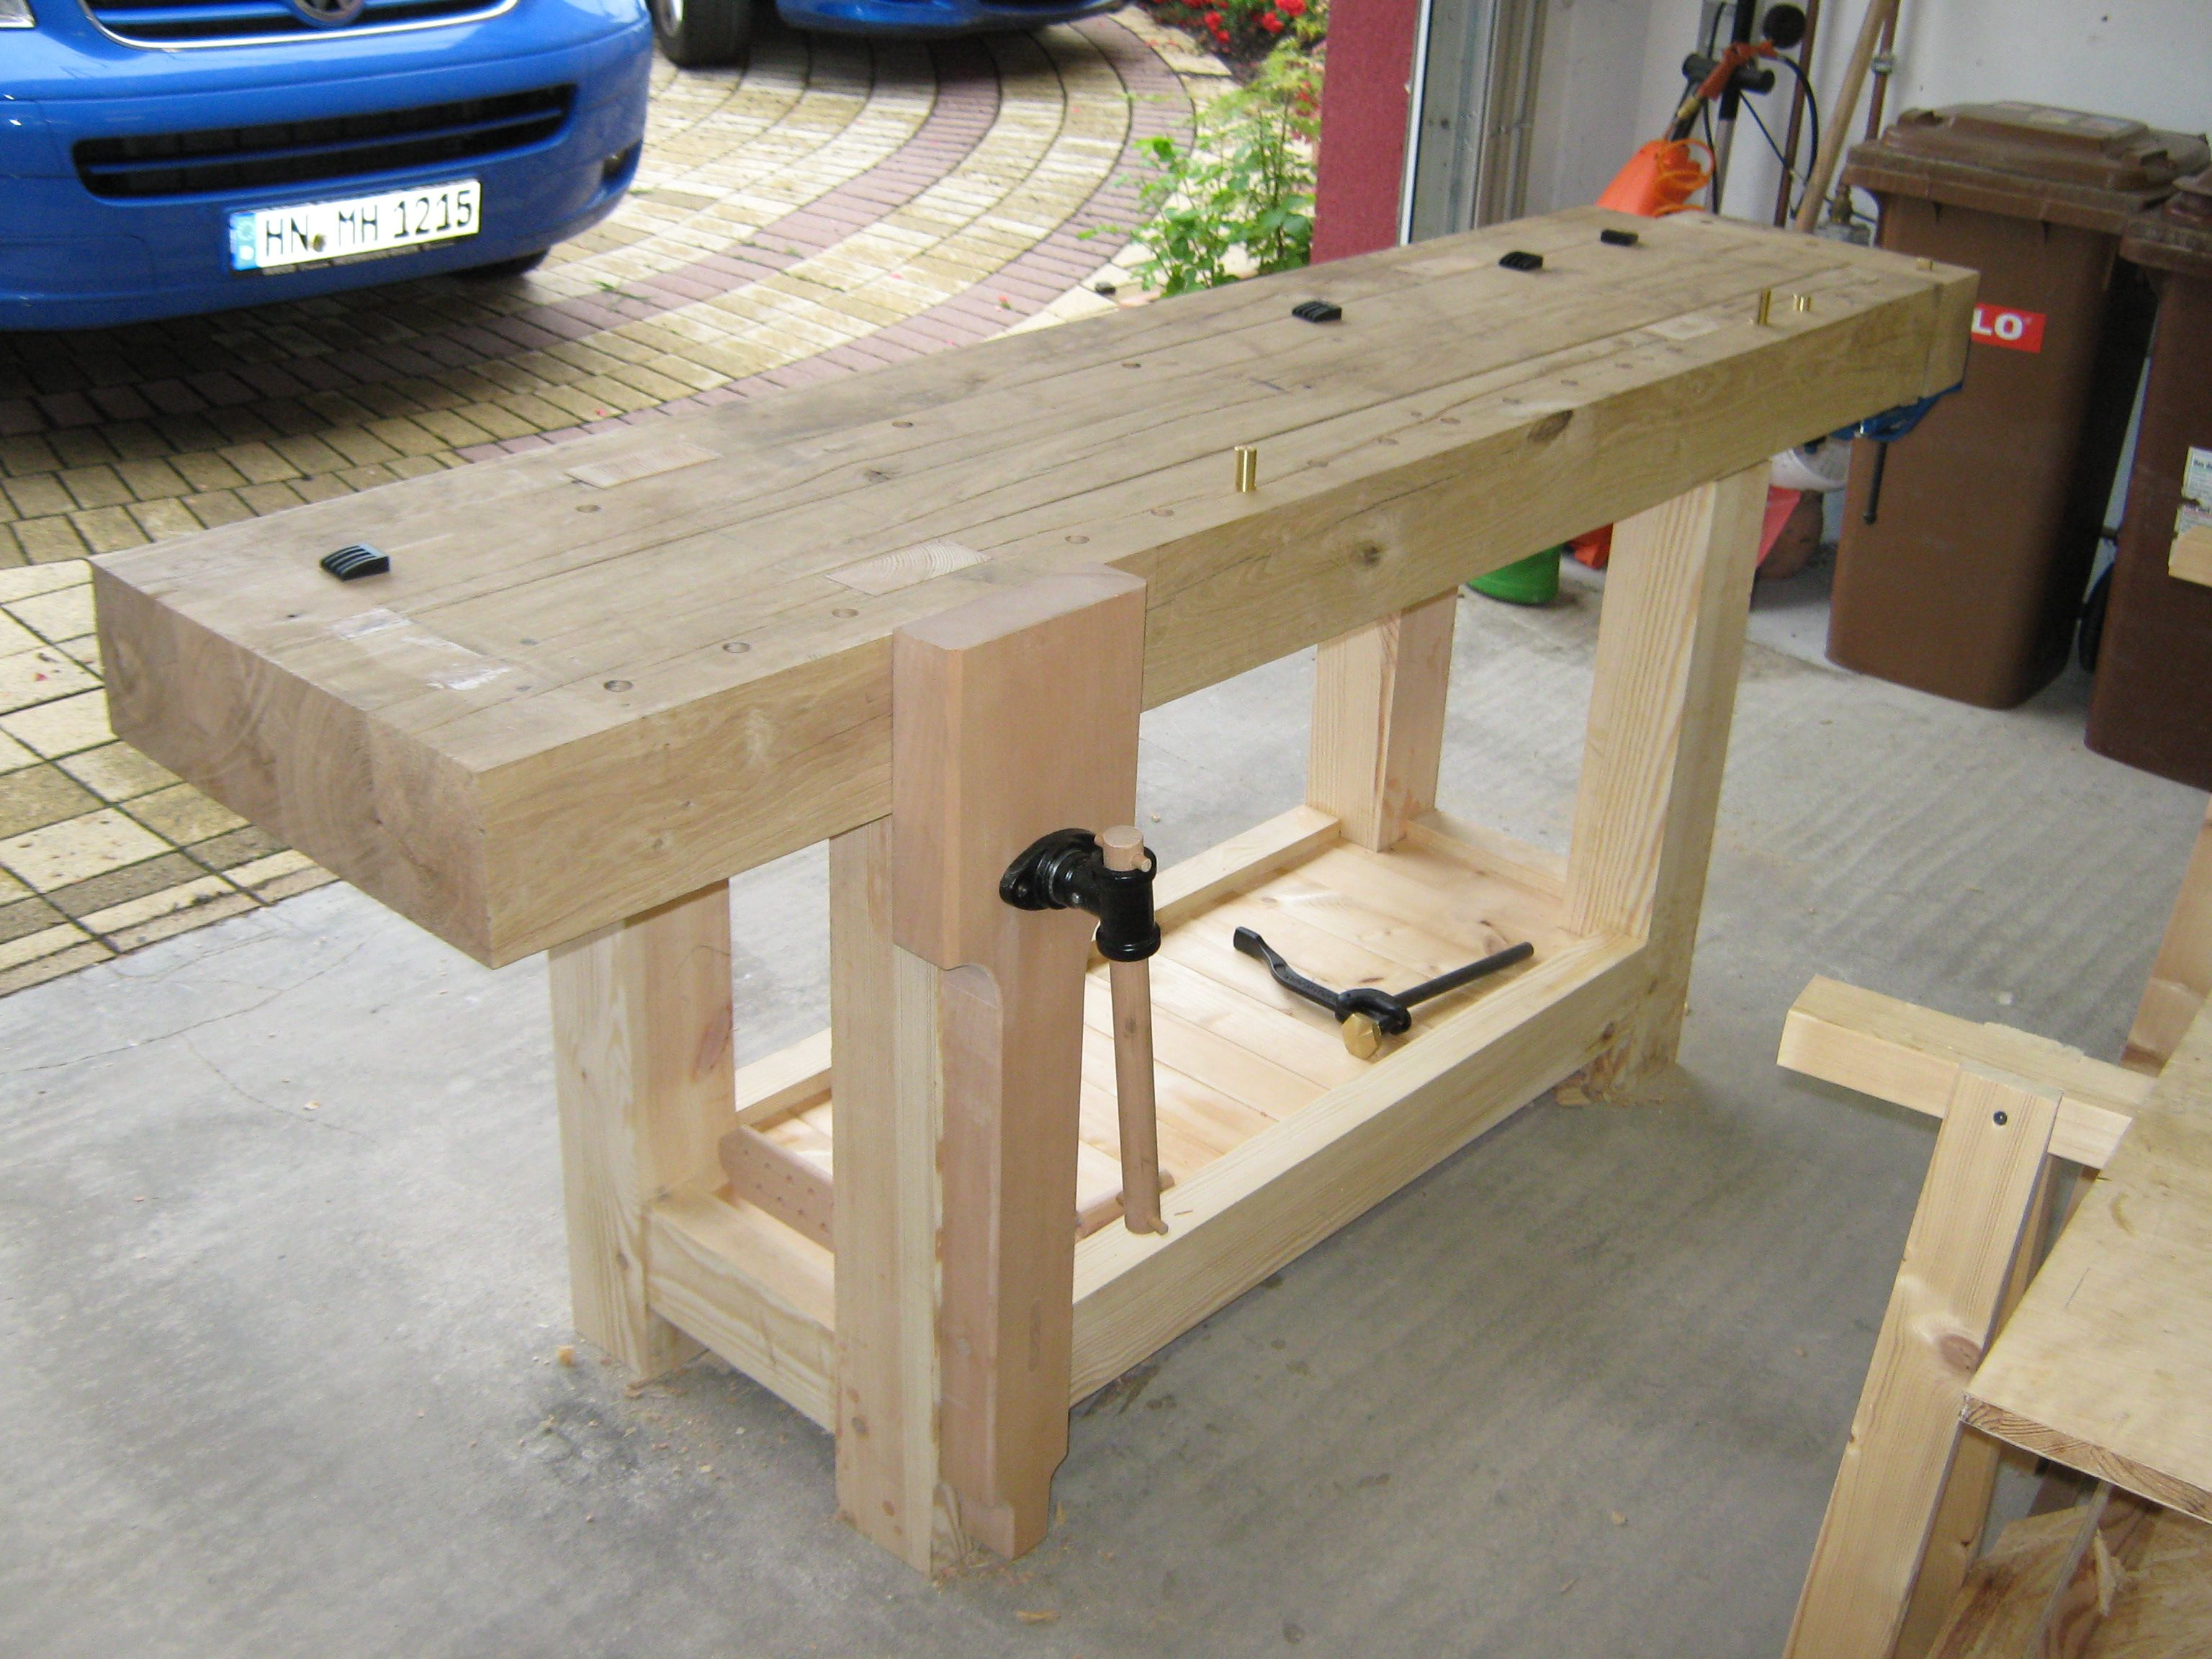 building a workbench fertigstellung der hobelbank teil 3. Black Bedroom Furniture Sets. Home Design Ideas